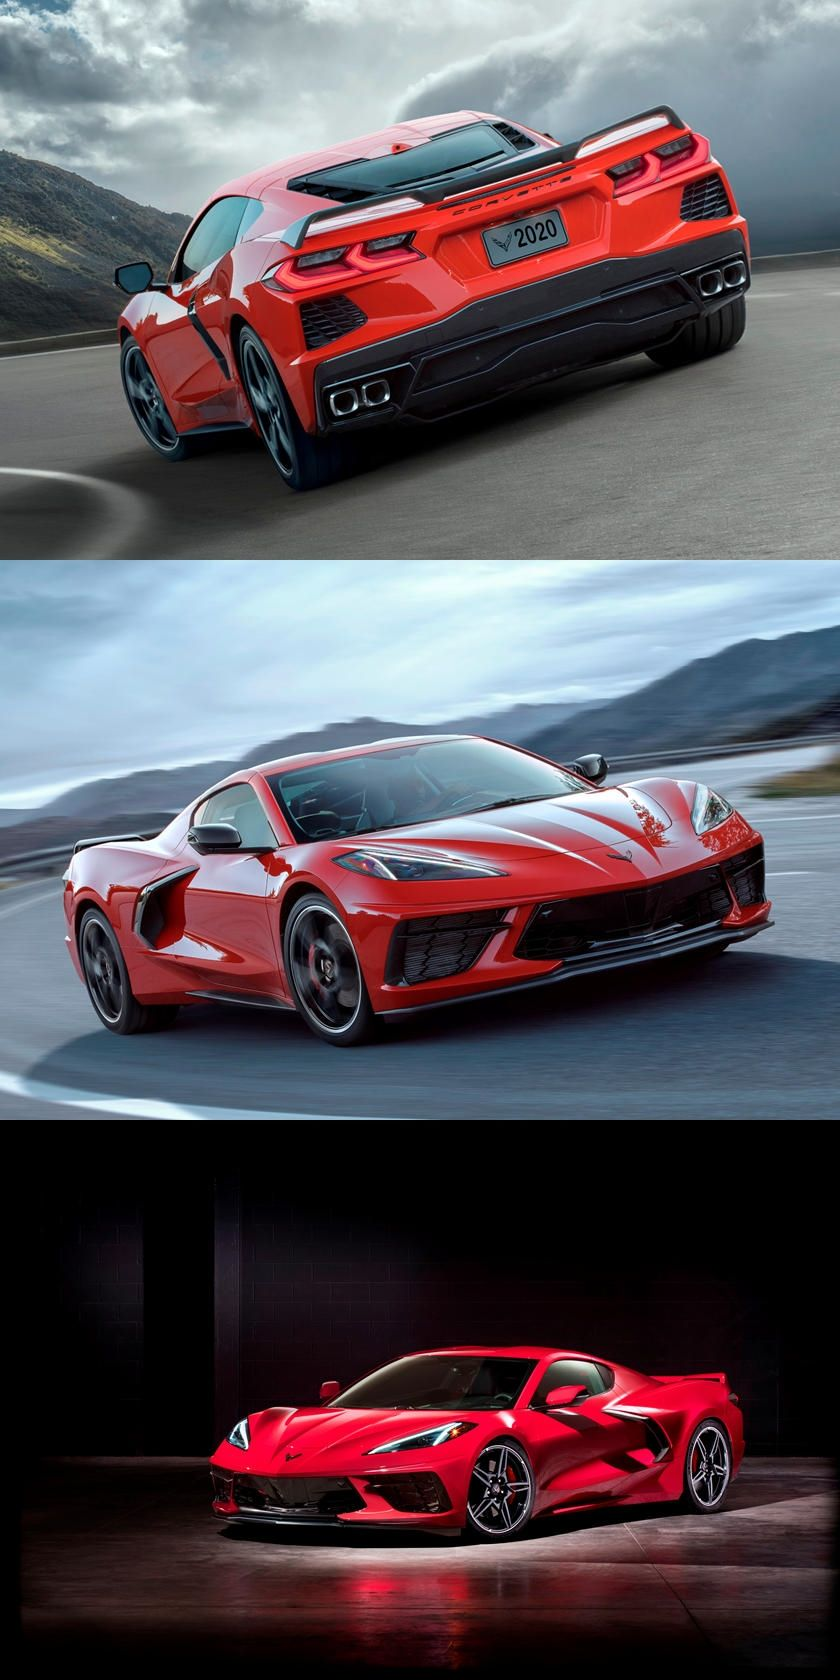 Canadians Can Get This C8 Corvette Option For A Crazy Low Price Why Is This C8 Corvette Accessory So In 2020 Corvette Corvette Accessories Chevrolet Corvette Stingray